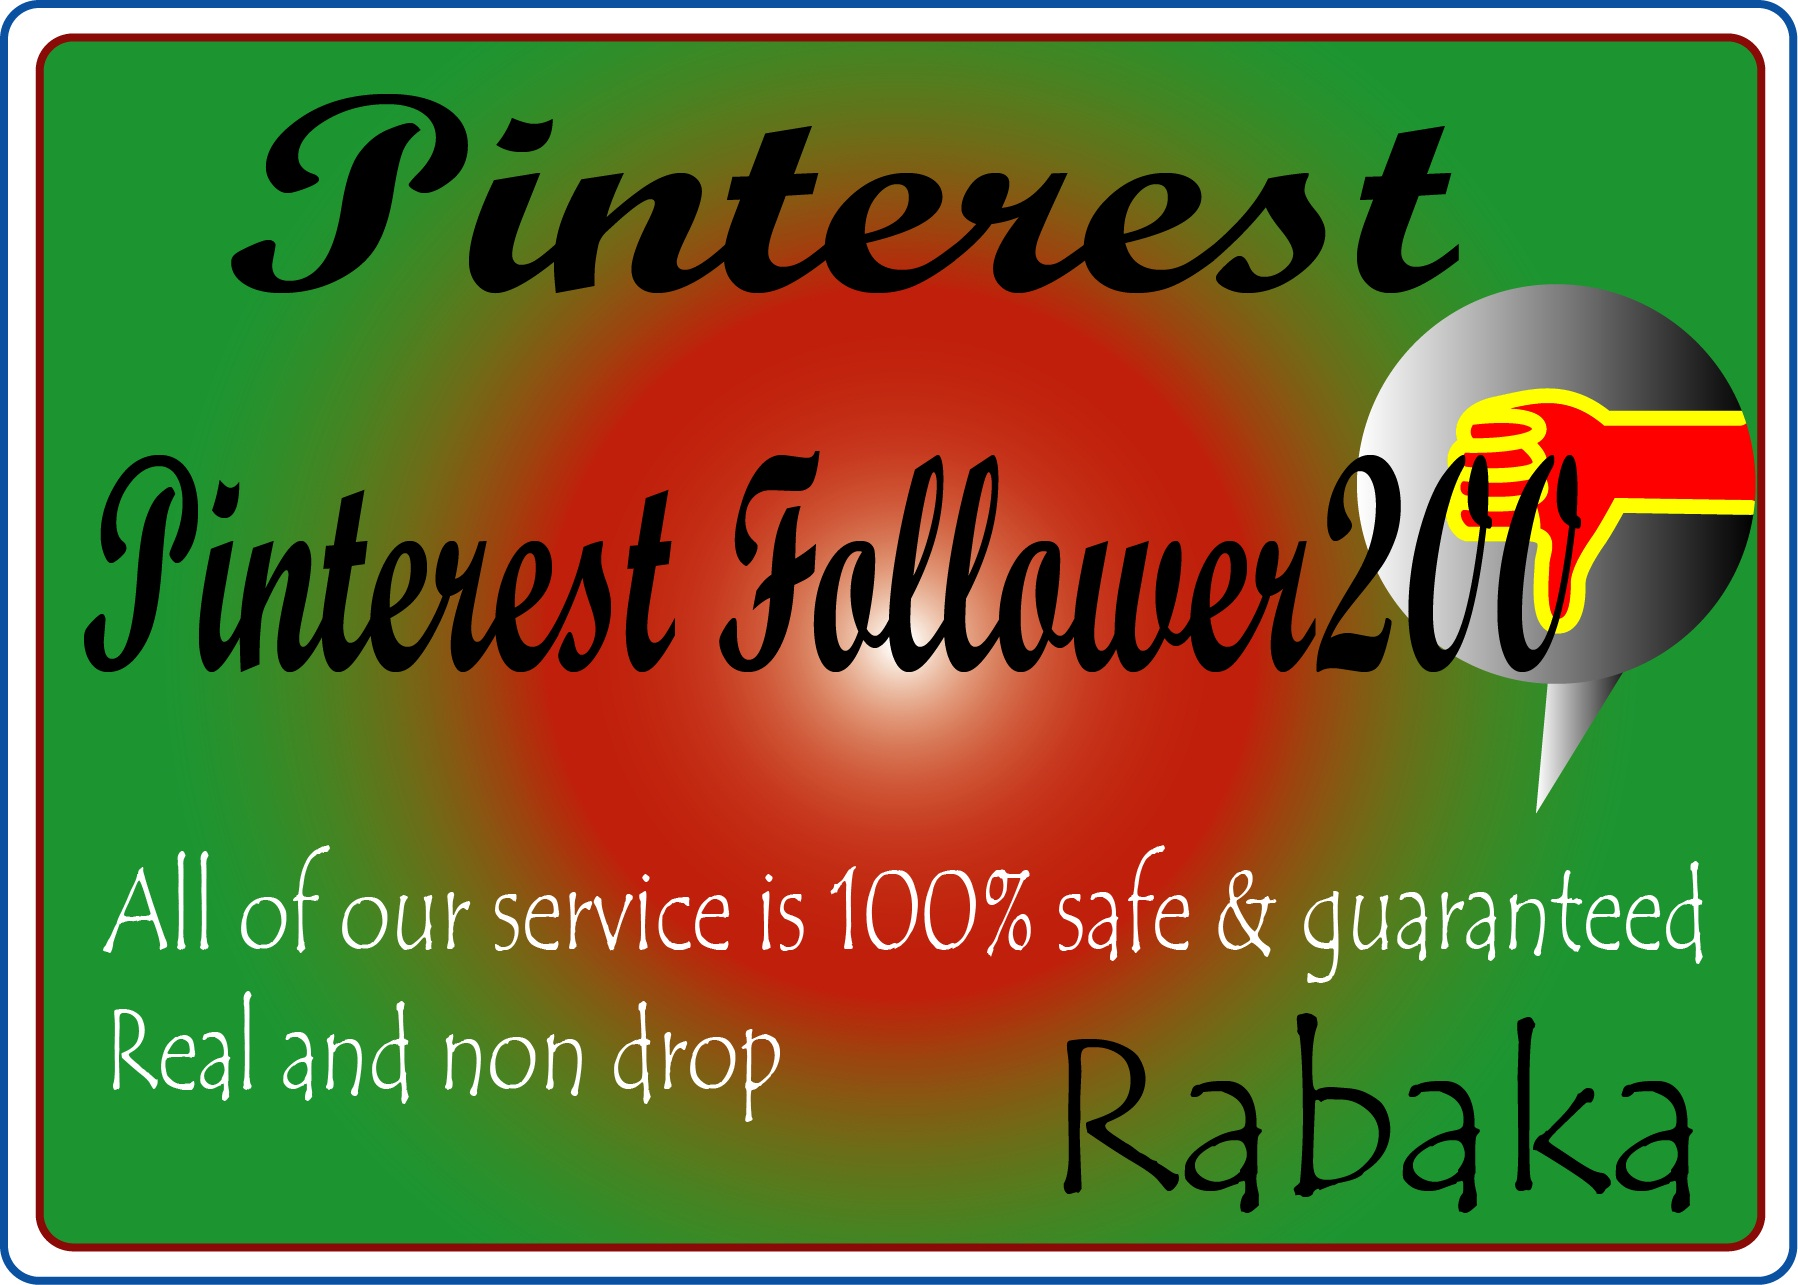 get real and non drop 340 pinterest followers high quality guaranteed